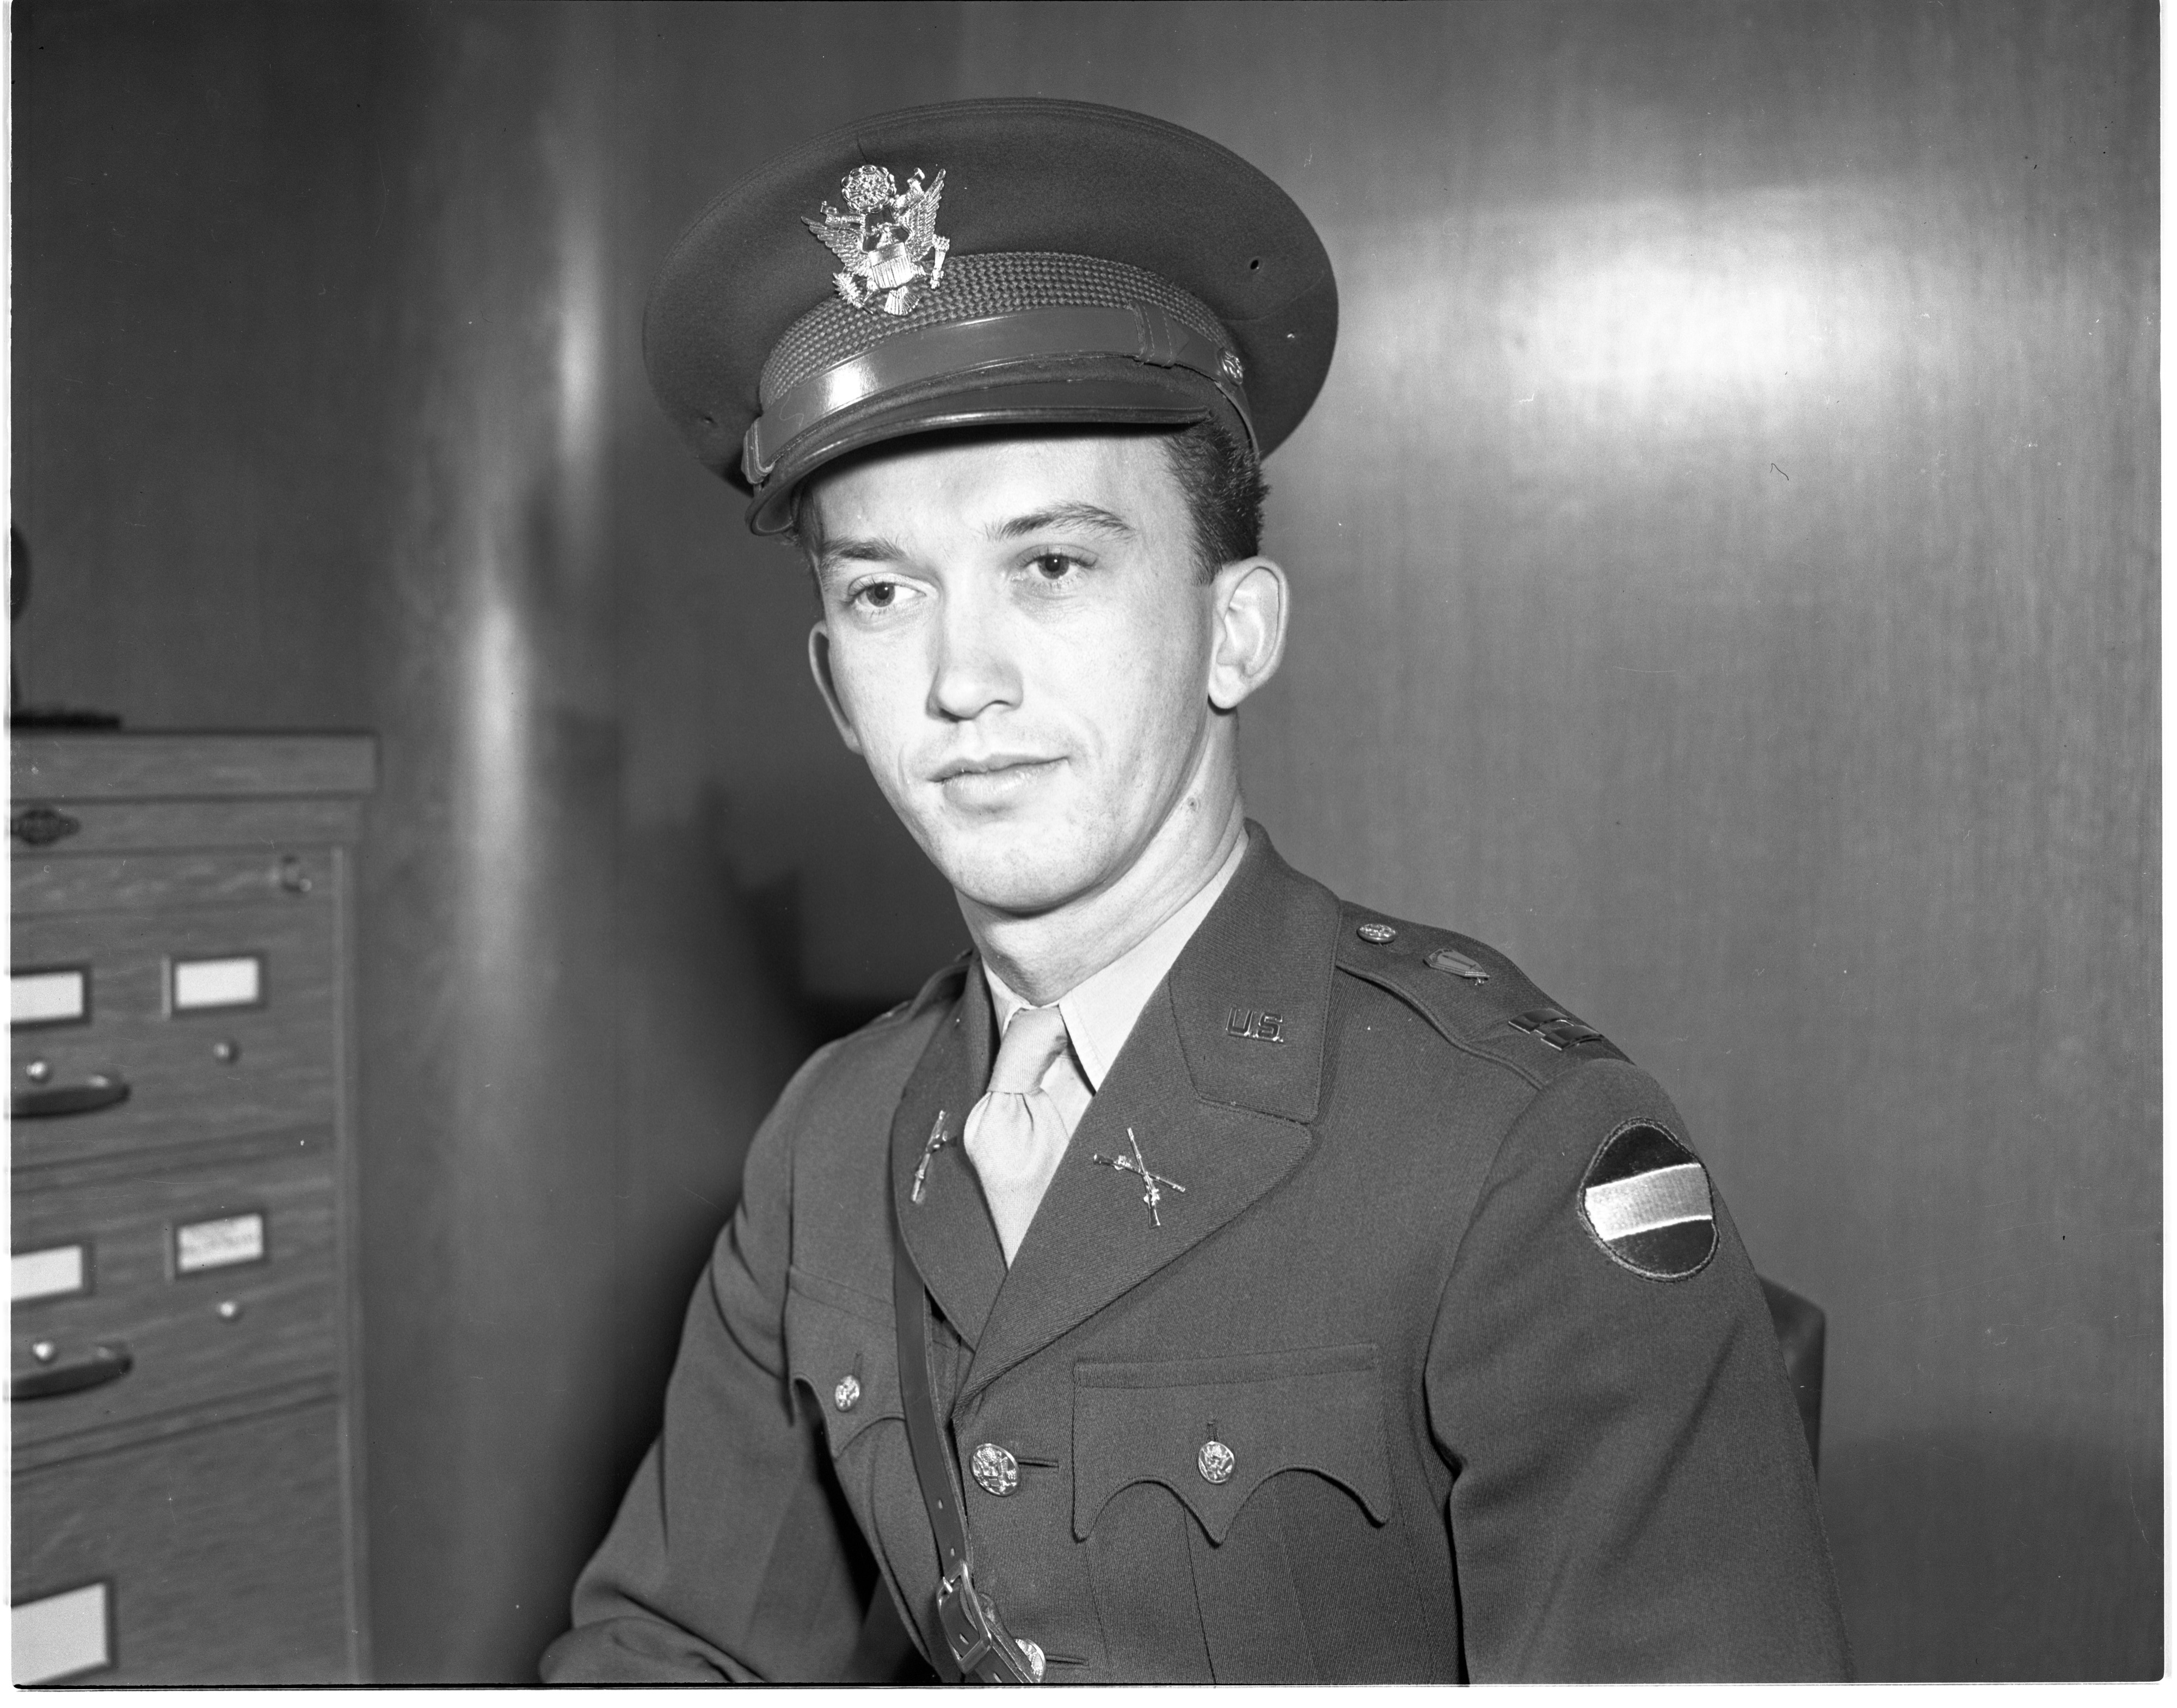 Capt. Edward L. Adams Jr., 1943 image